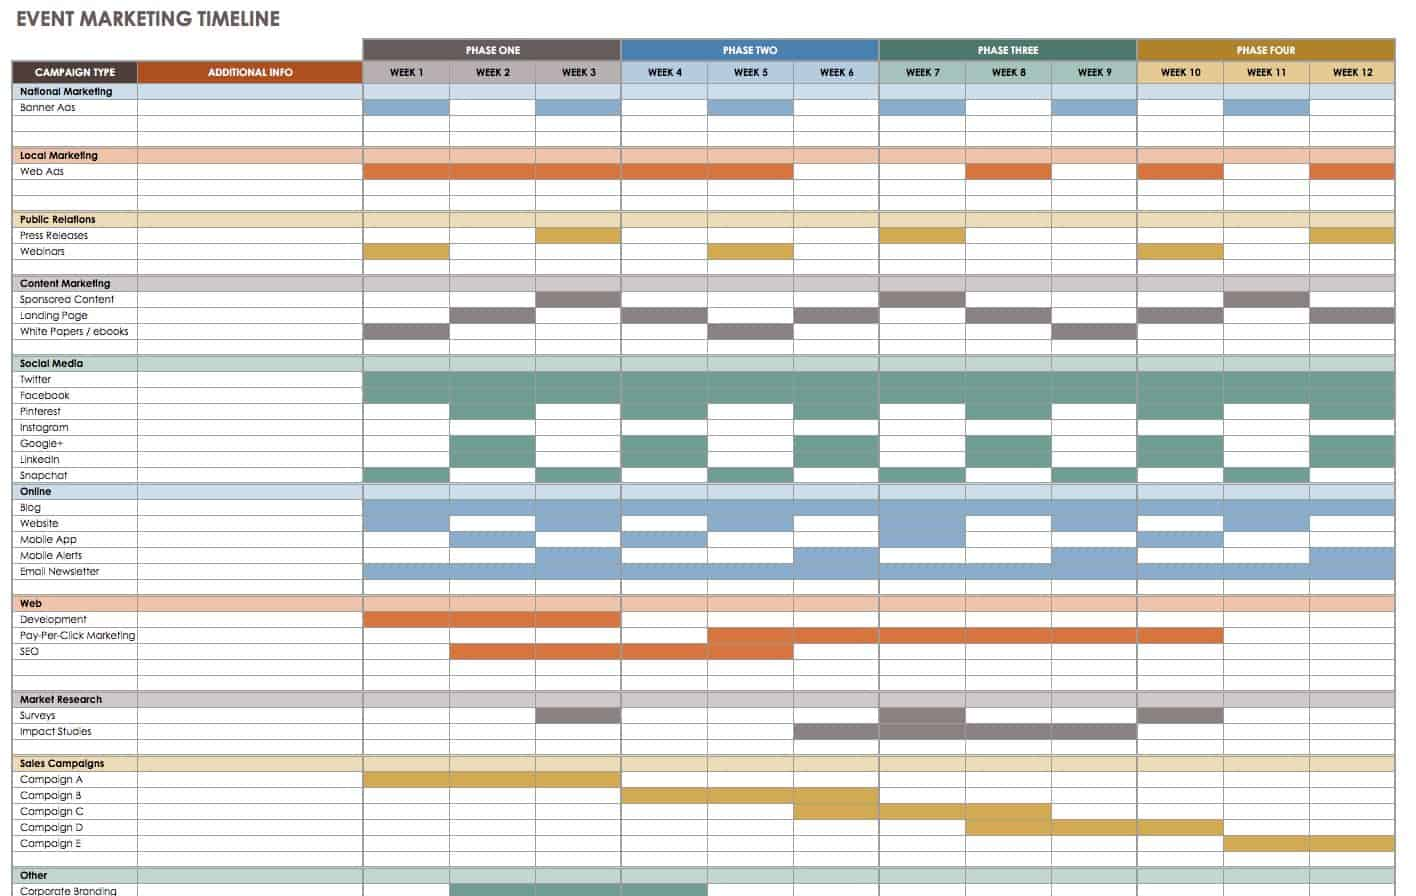 Free Event Planning Templates Smartsheet - Event planning timeline template